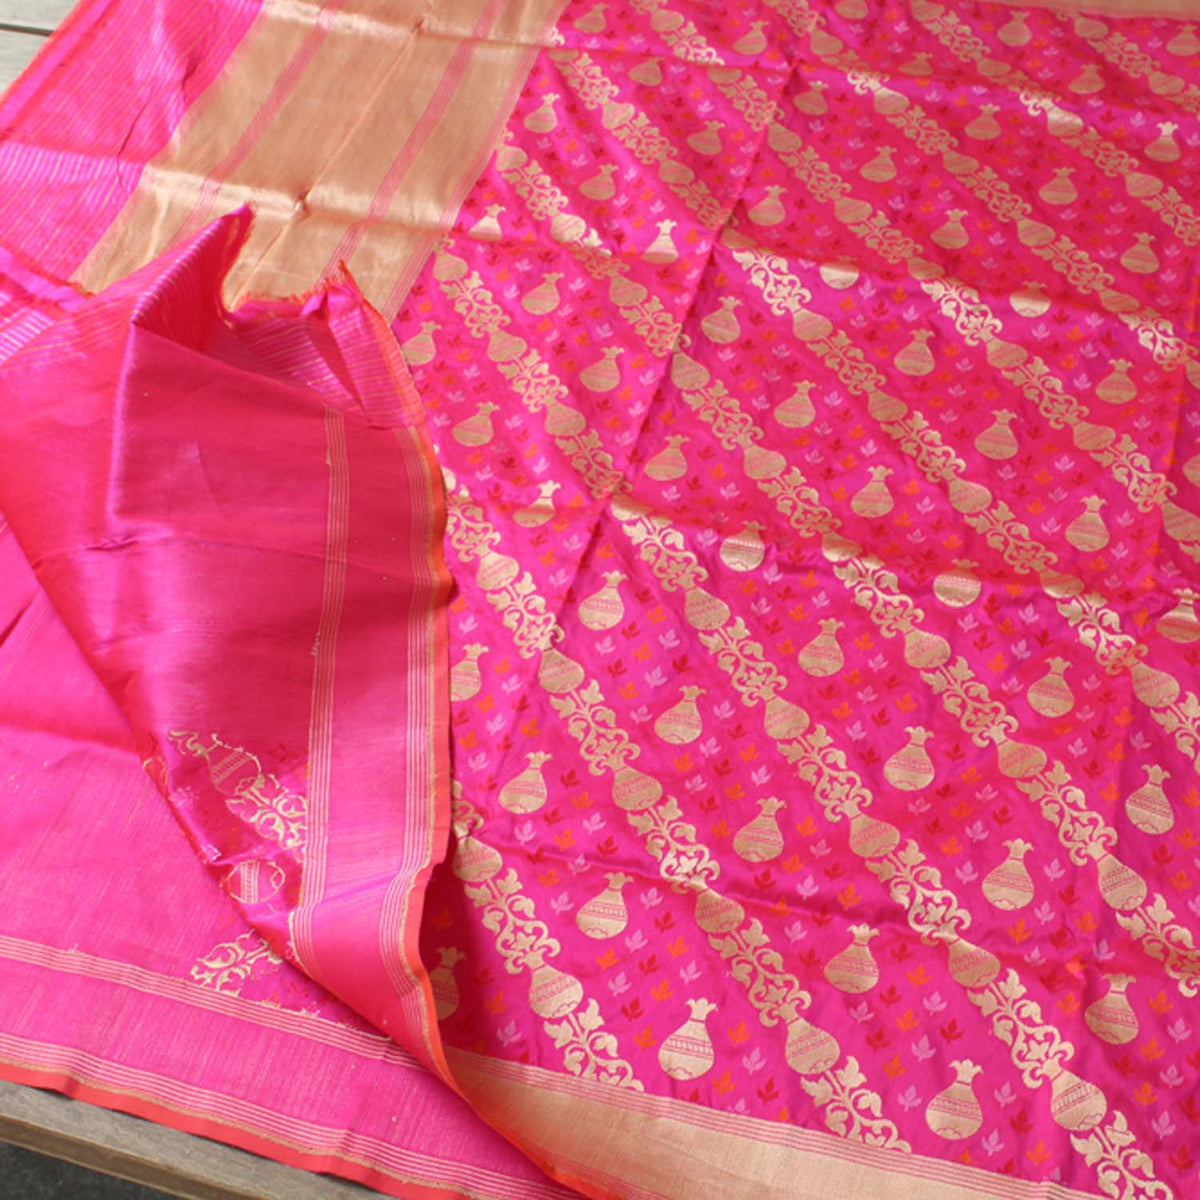 Orange Rose-Pink Pure Katan Silk Banarasi Handloom Dupatta - Tilfi - 5